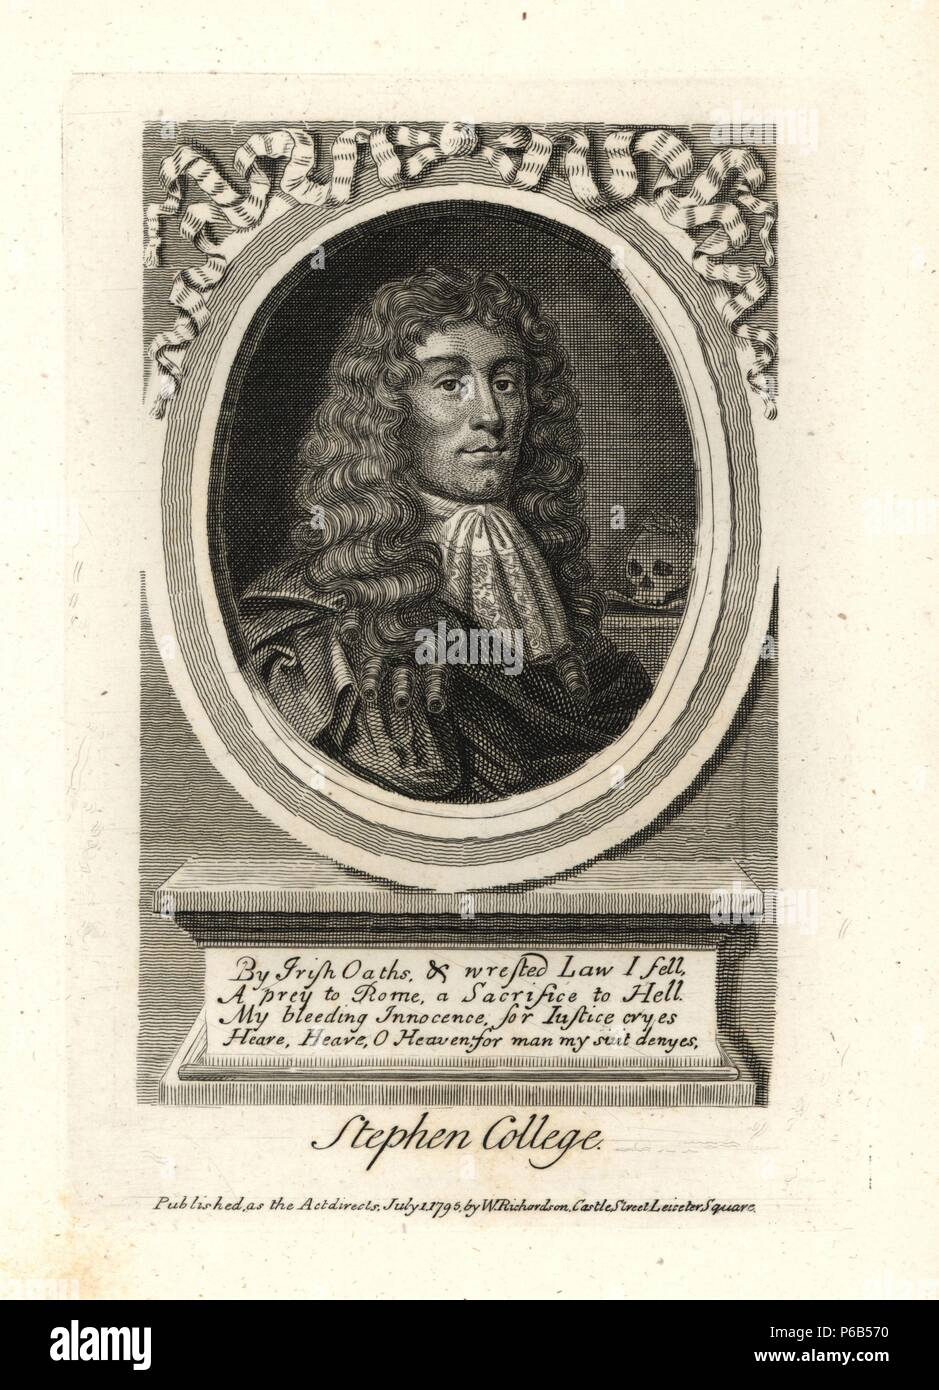 Stephen College, the protestant joiner. Executed 1681, from a rare print. Copperplate engraving from Richardson's 'Portraits illustrating Granger's Biographical History of England,' London, 1792–1812. Published by William Richardson, printseller, London. James Granger (1723–1776) was an English clergyman, biographer, and print collector. - Stock Image